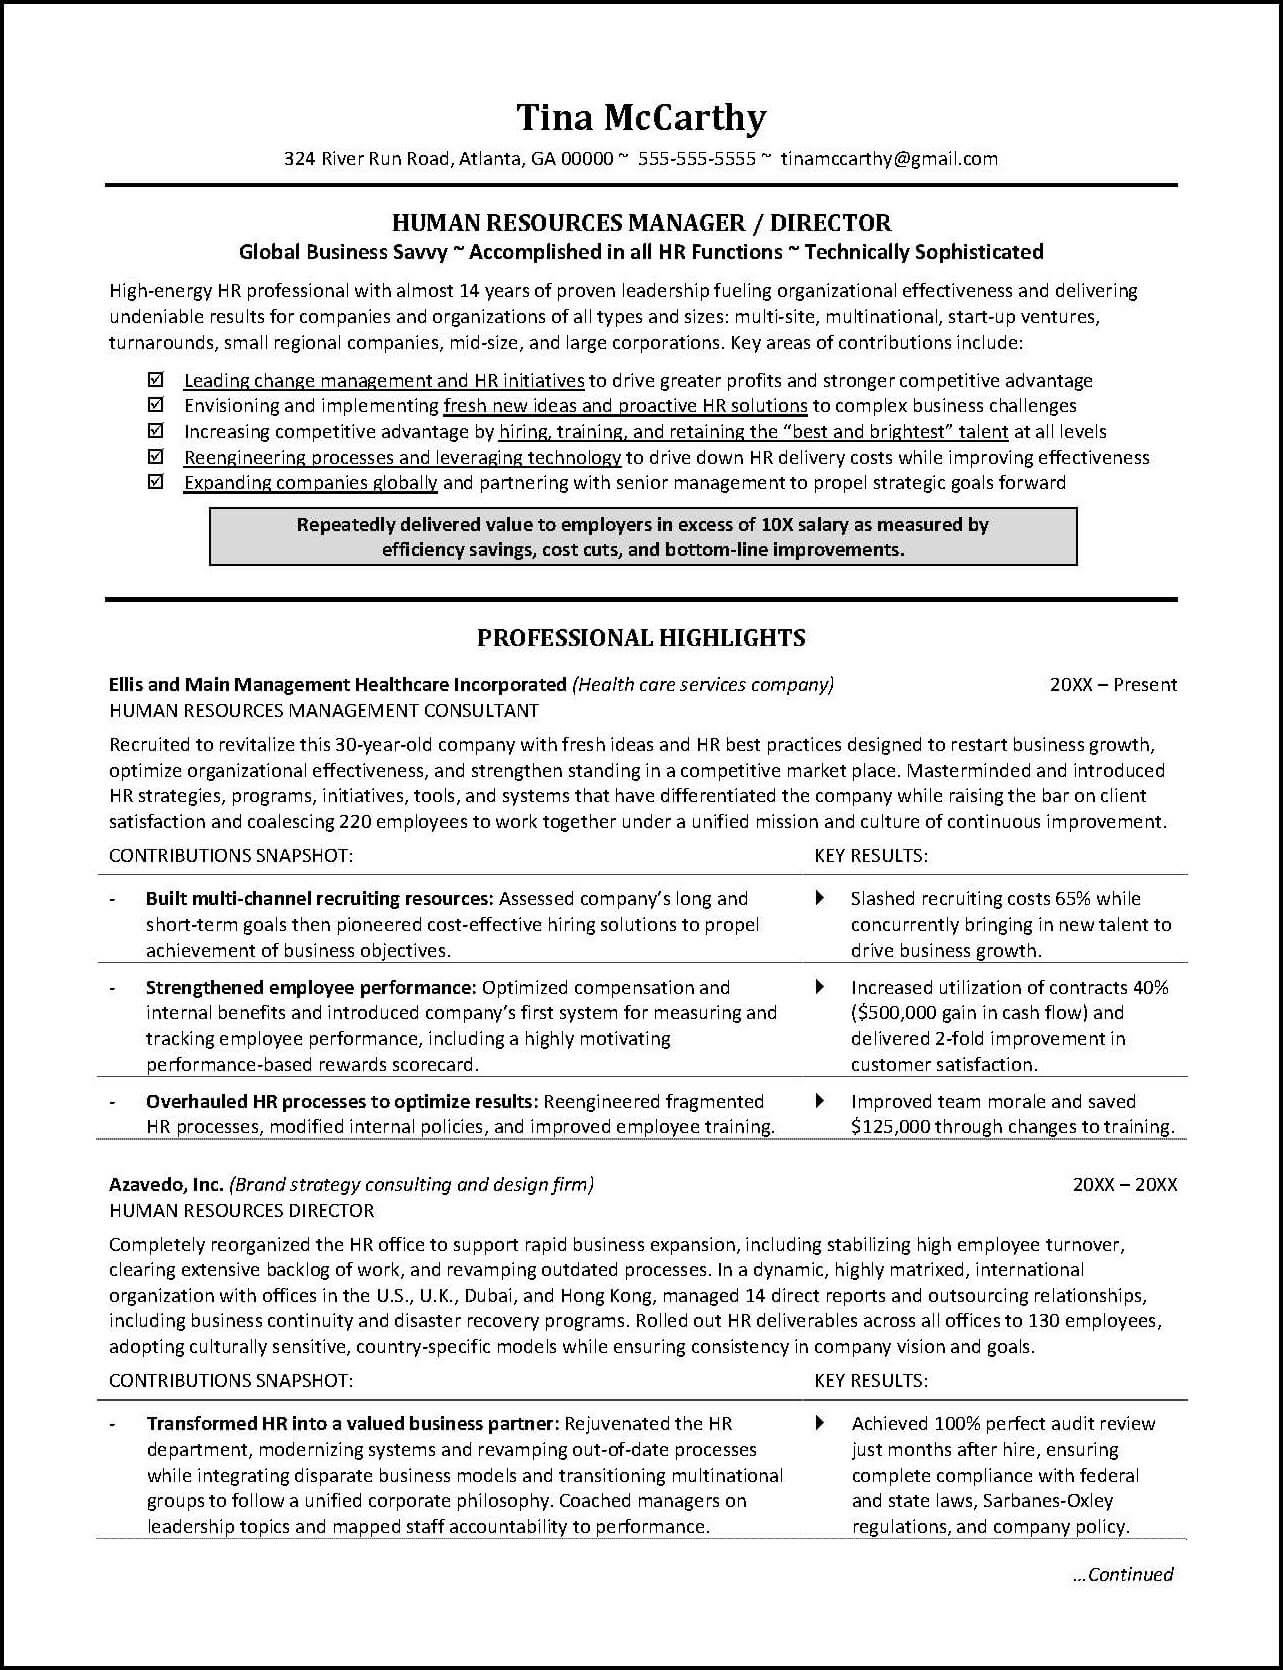 human resources resume example distinctive career services examples aws devops sample Resume Human Services Resume Examples